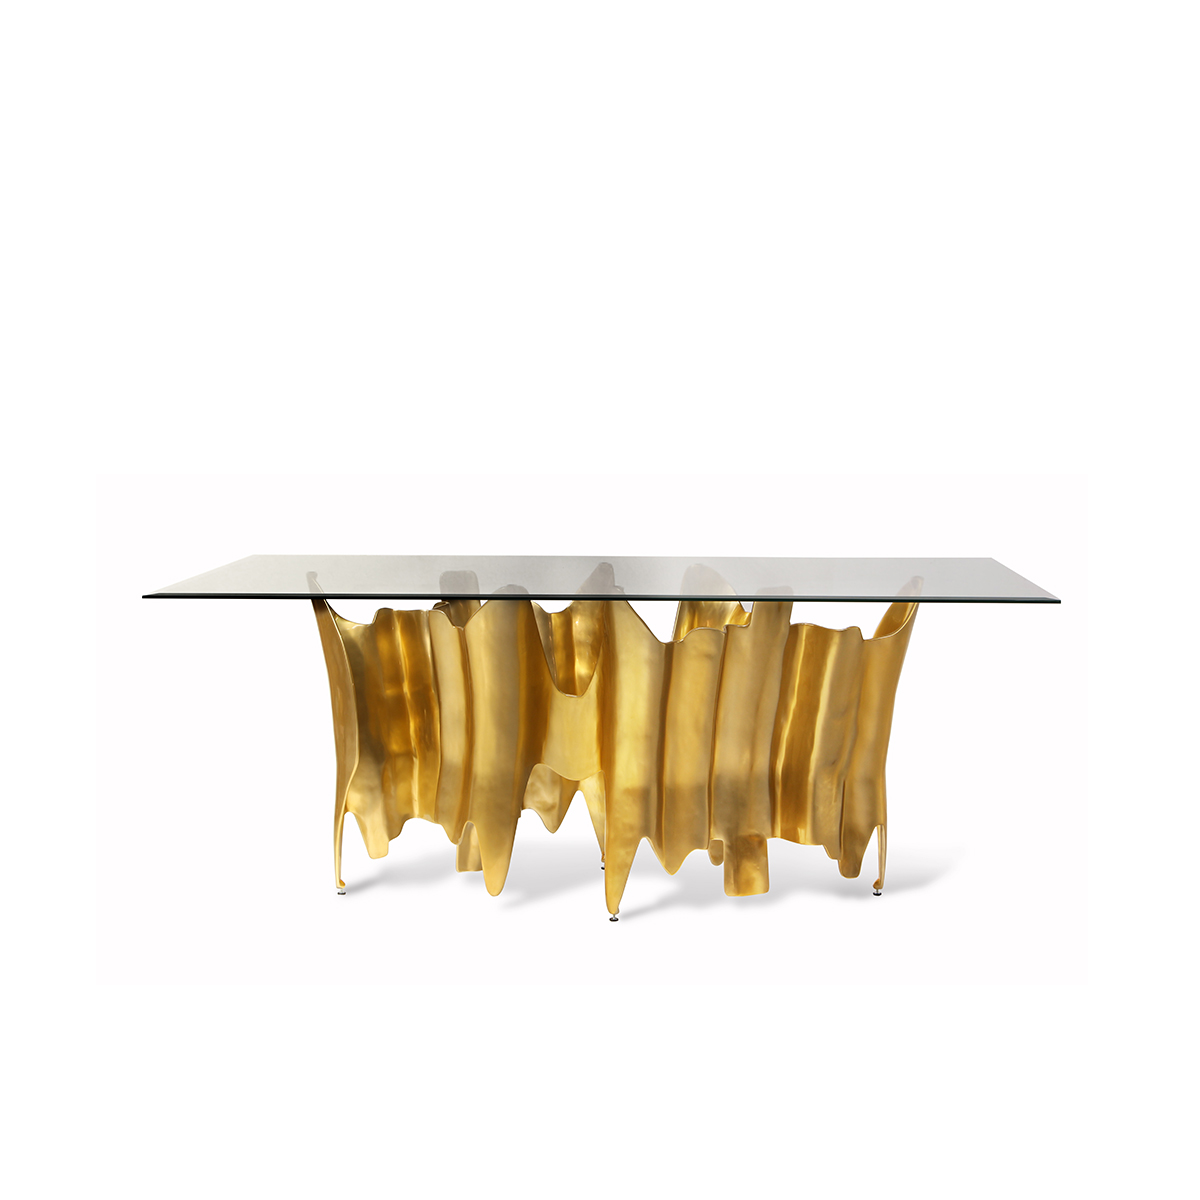 More 20 Luxury Dining Tables That Are Perfect For Your Home_4